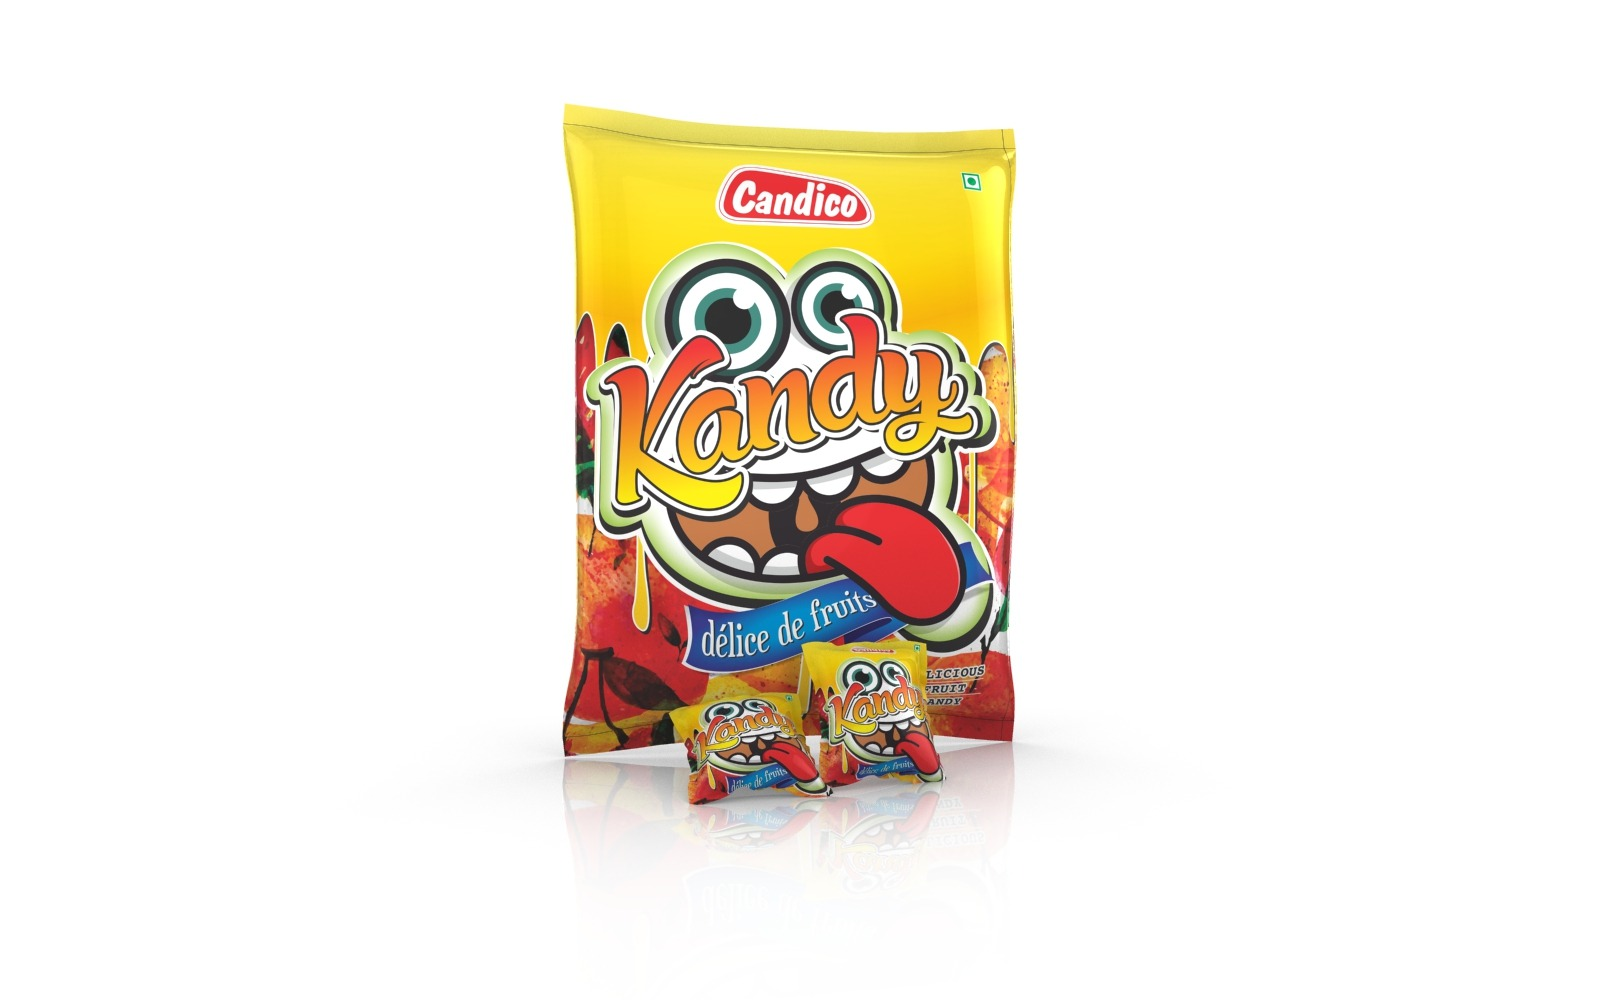 Candy/ Lollypop/ Sweets pouch & wrapper packaging design